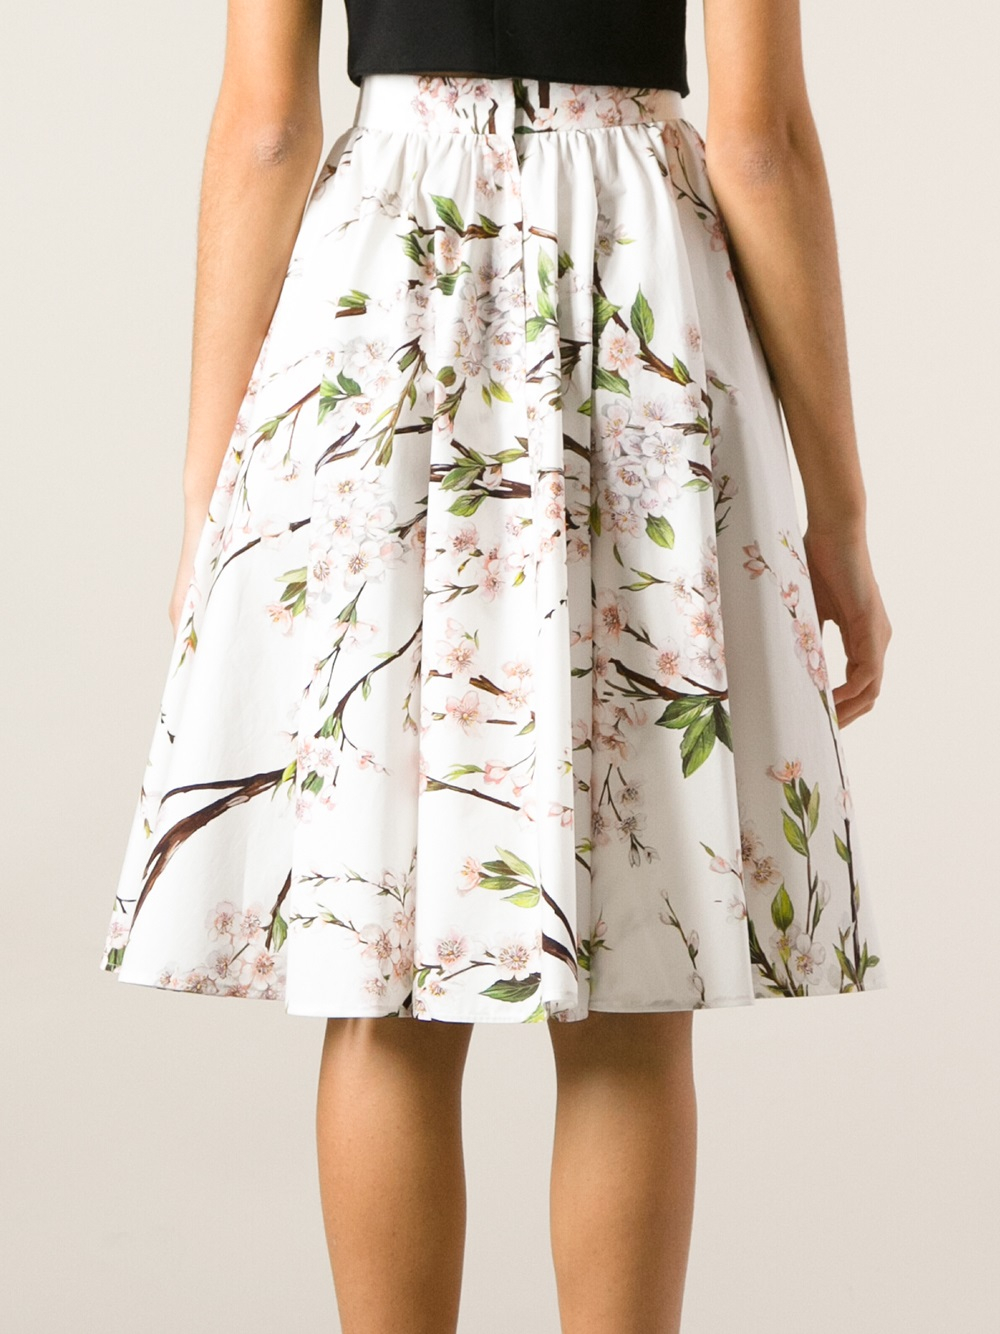 Dolce & gabbana Floral Printed Aline Skirt in White | Lyst